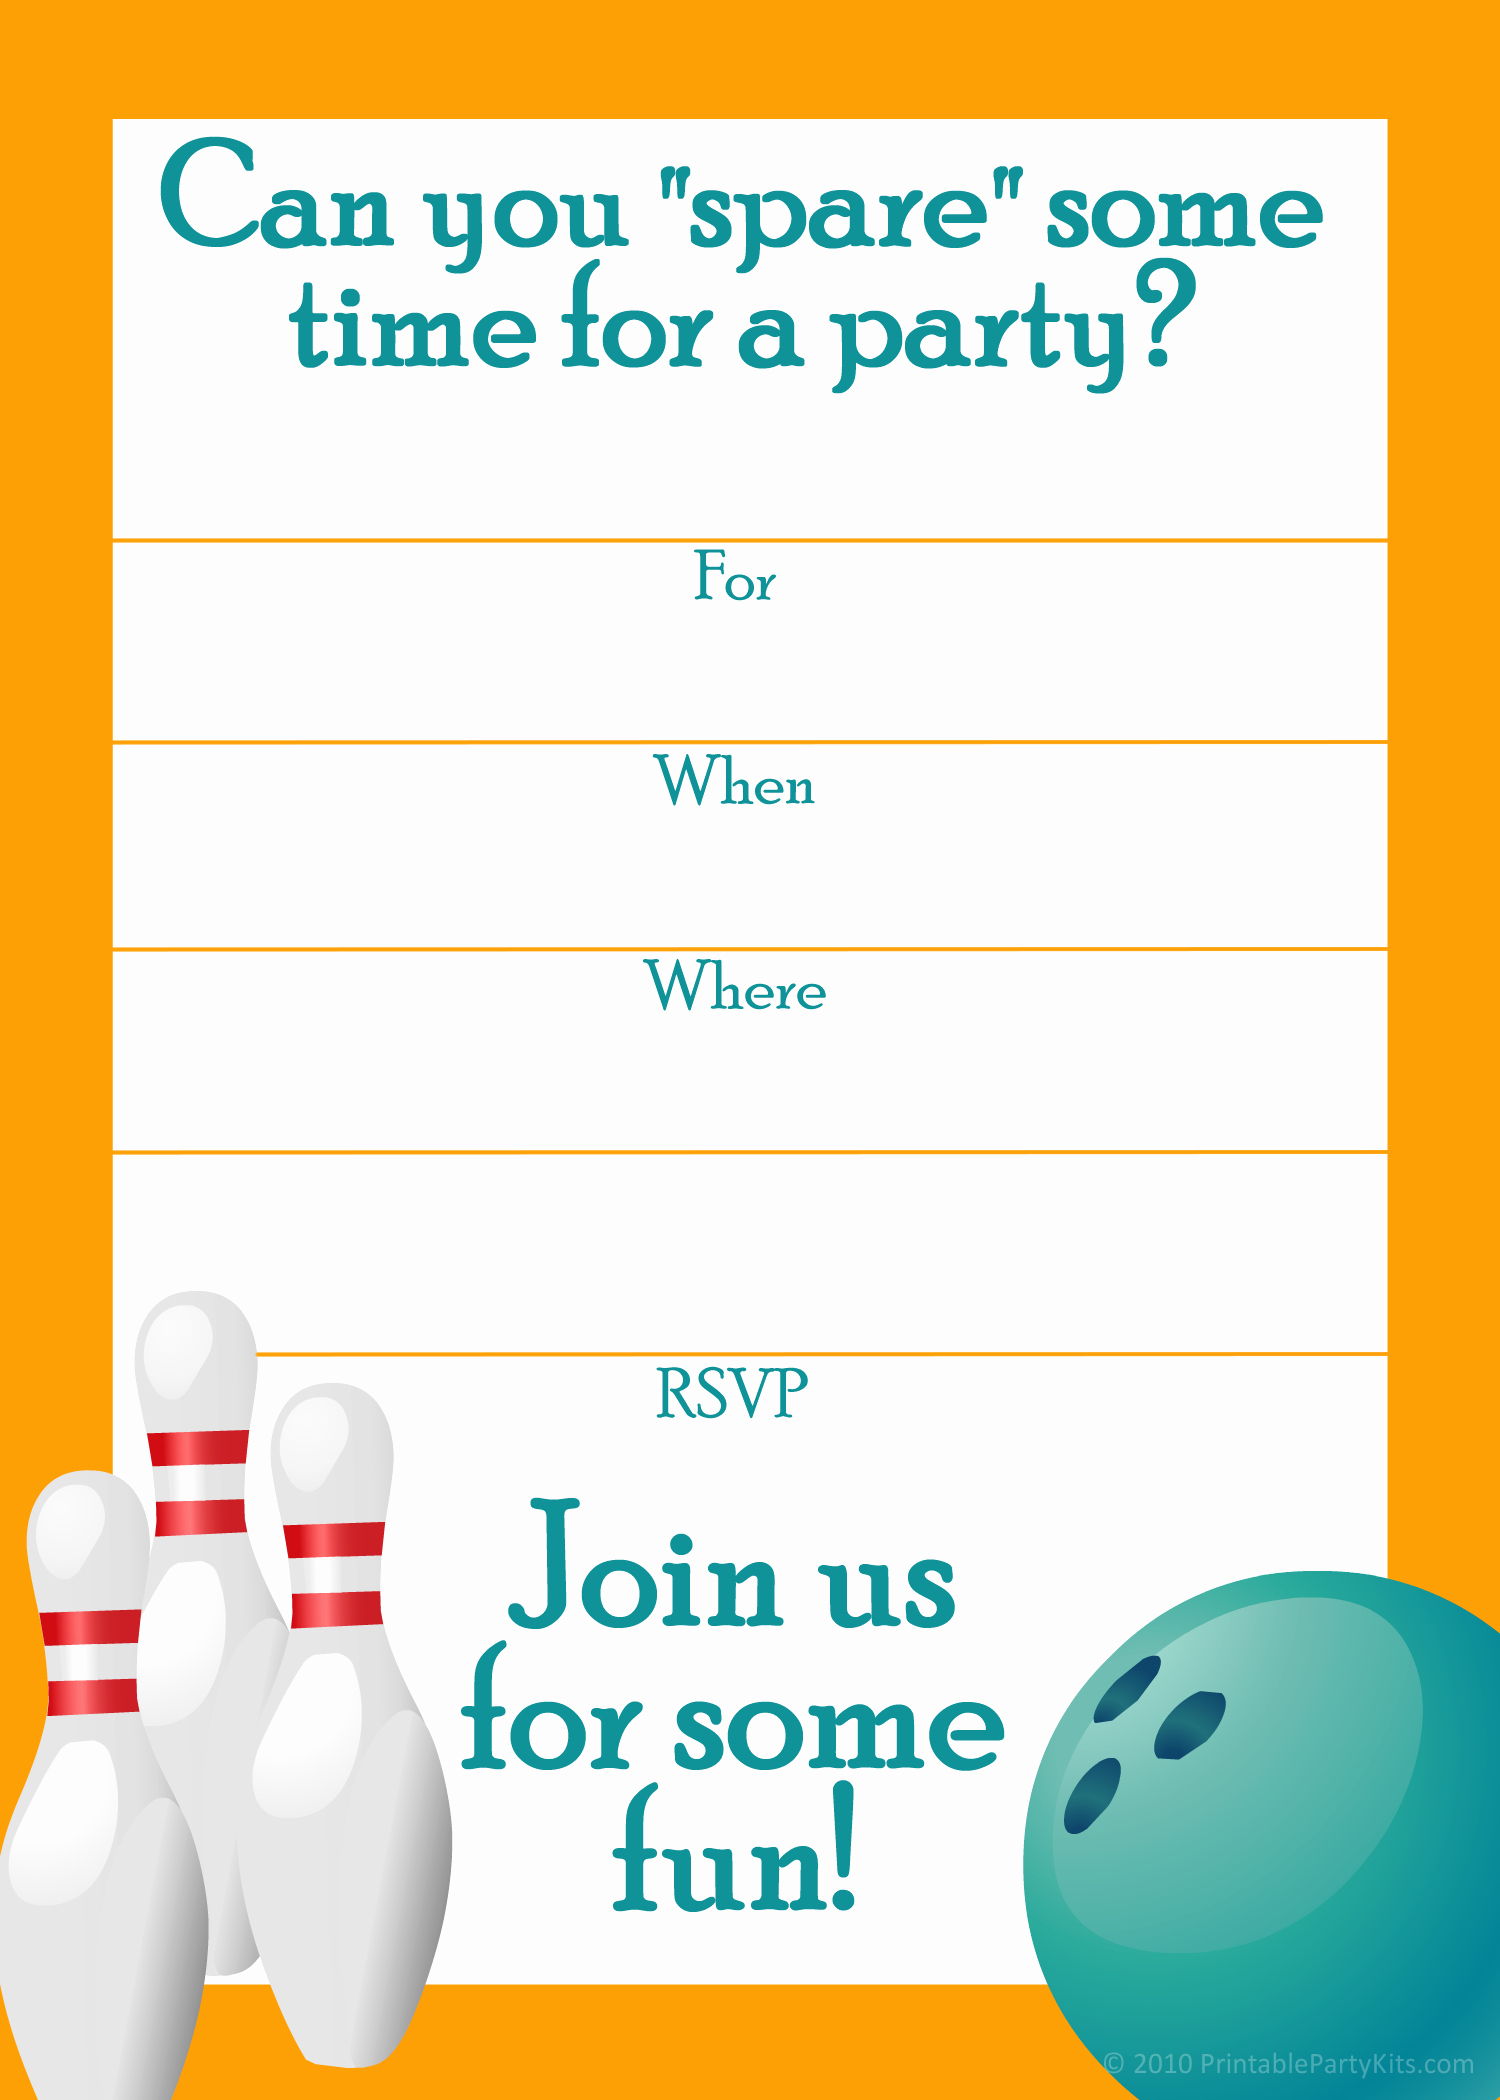 Bowling Party Invitation Templates Free Inspirational Free Printable Sports Birthday Party Invitations Templates